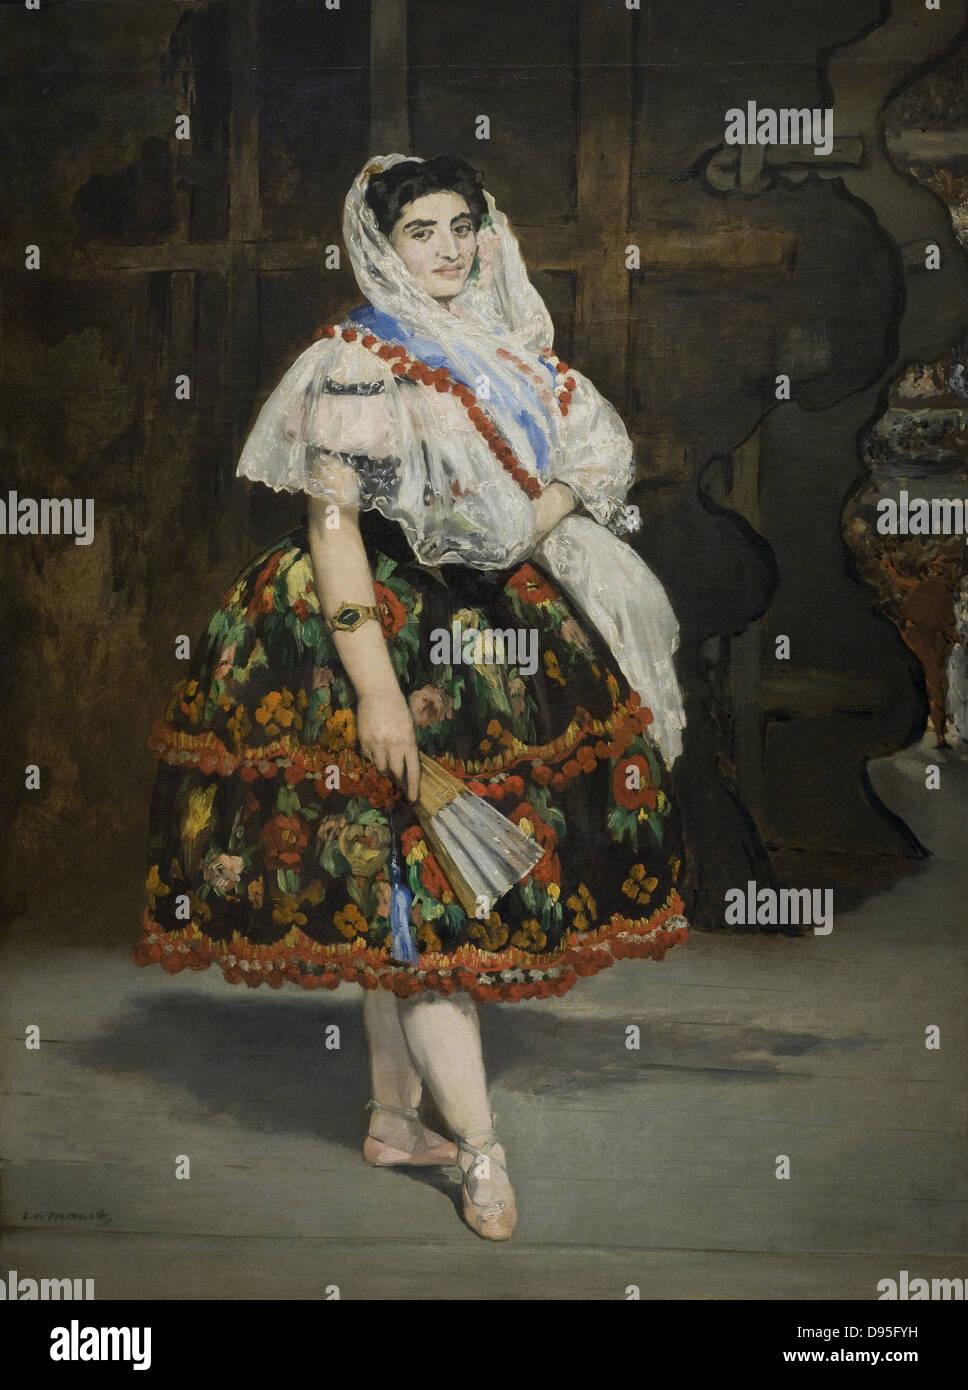 Edouard Manet Lola de Valence 1862 XIX th Century French school Orsay Museum - Paris - Stock Image